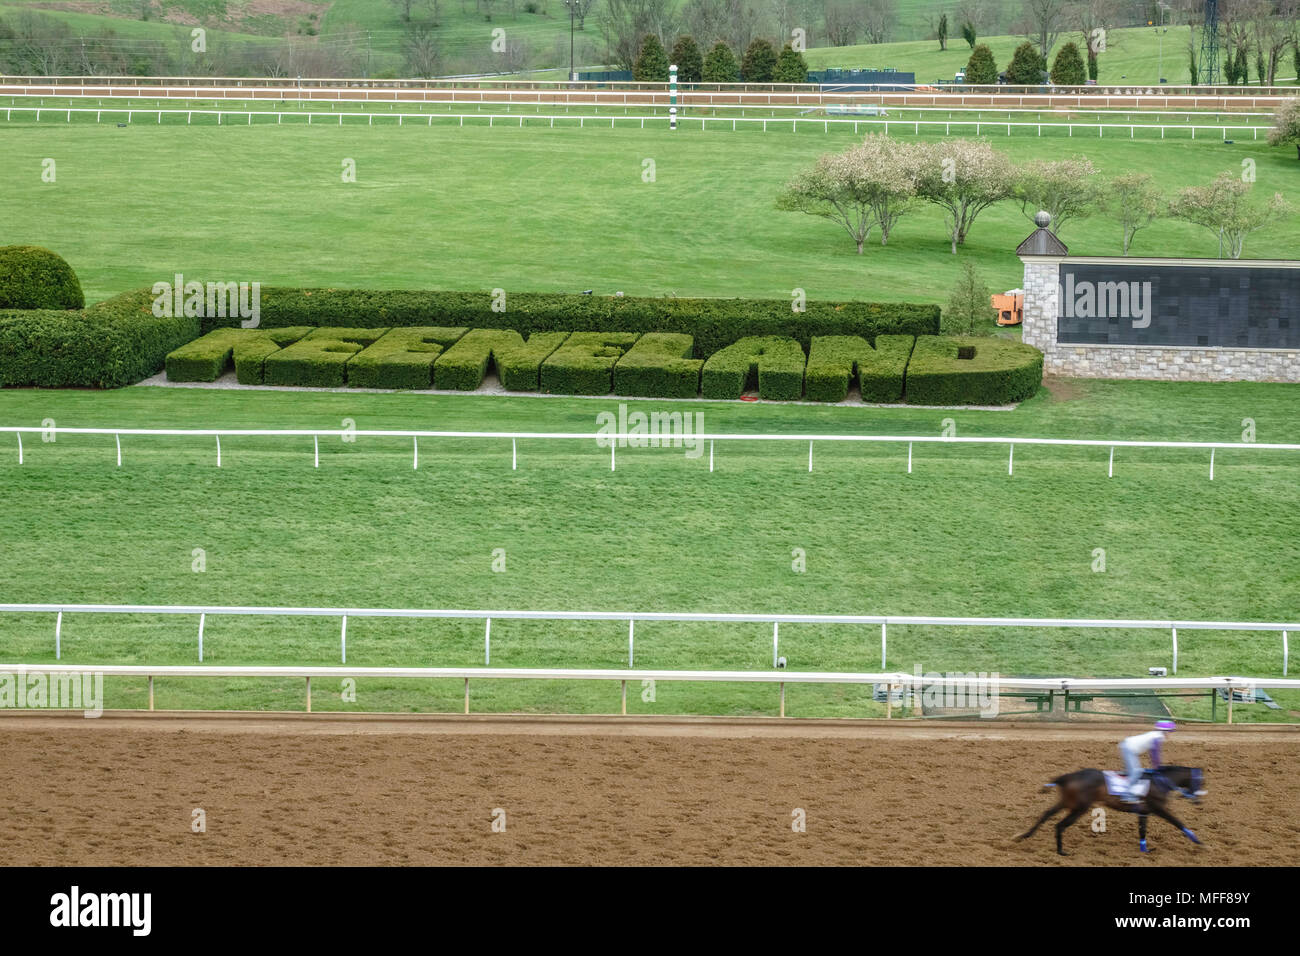 LEXINGTON, KY/USA - APRIL 19, 2018: At a morning workout at Keeneland Race Course, a rider and thoroughbred (lower right) pass by landmark topiary of  - Stock Image